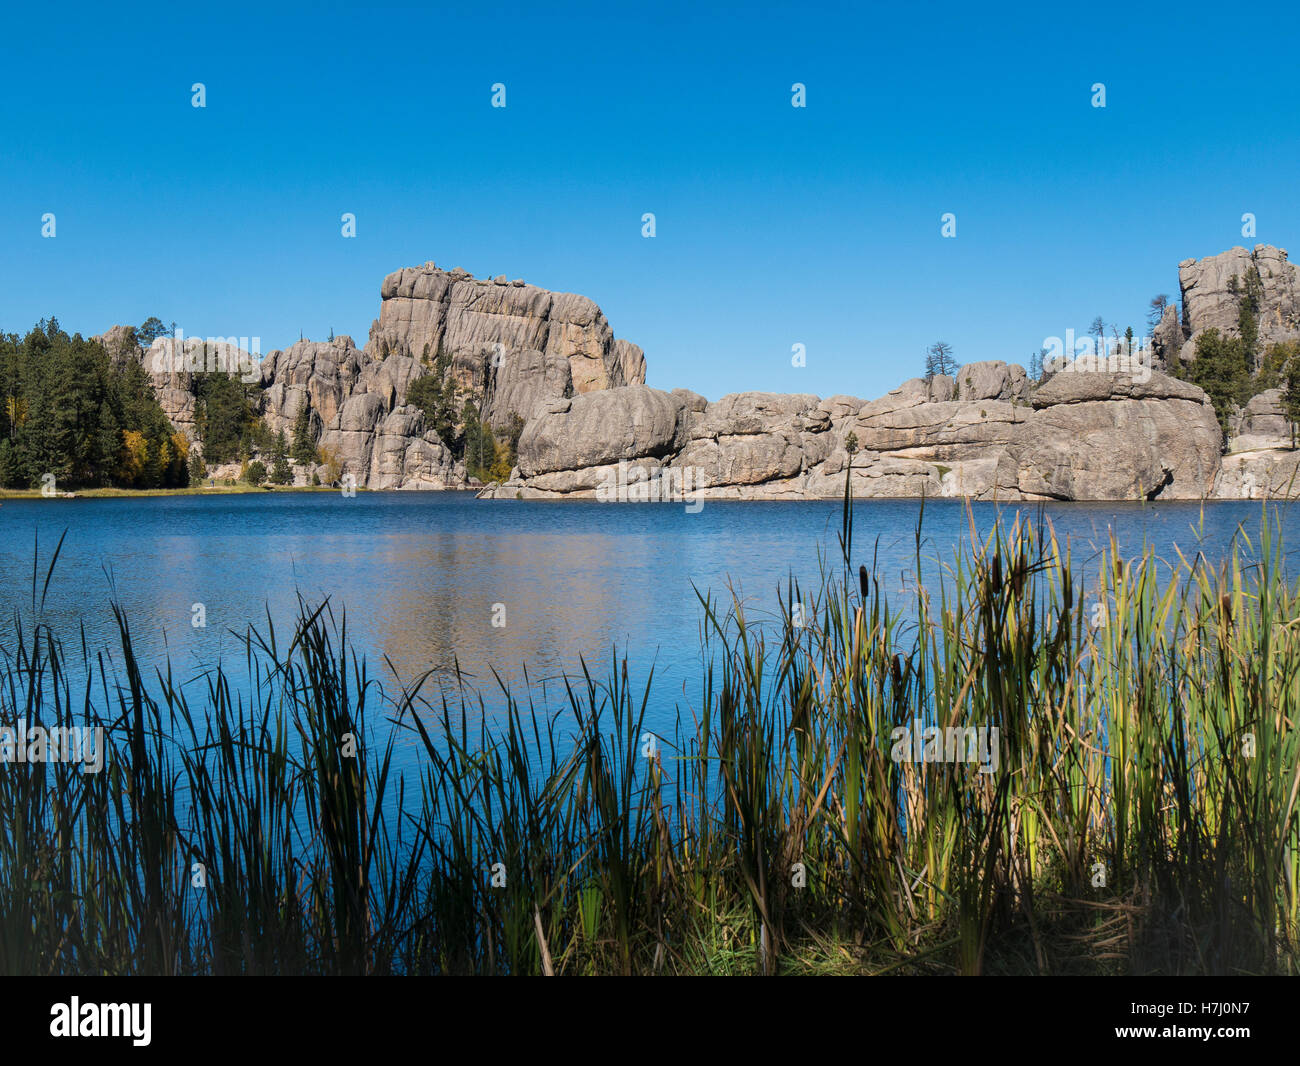 Catttails and rock formations, Sylvan Lake,  Needles Highway, Custer State Park, South Dakota. - Stock Image